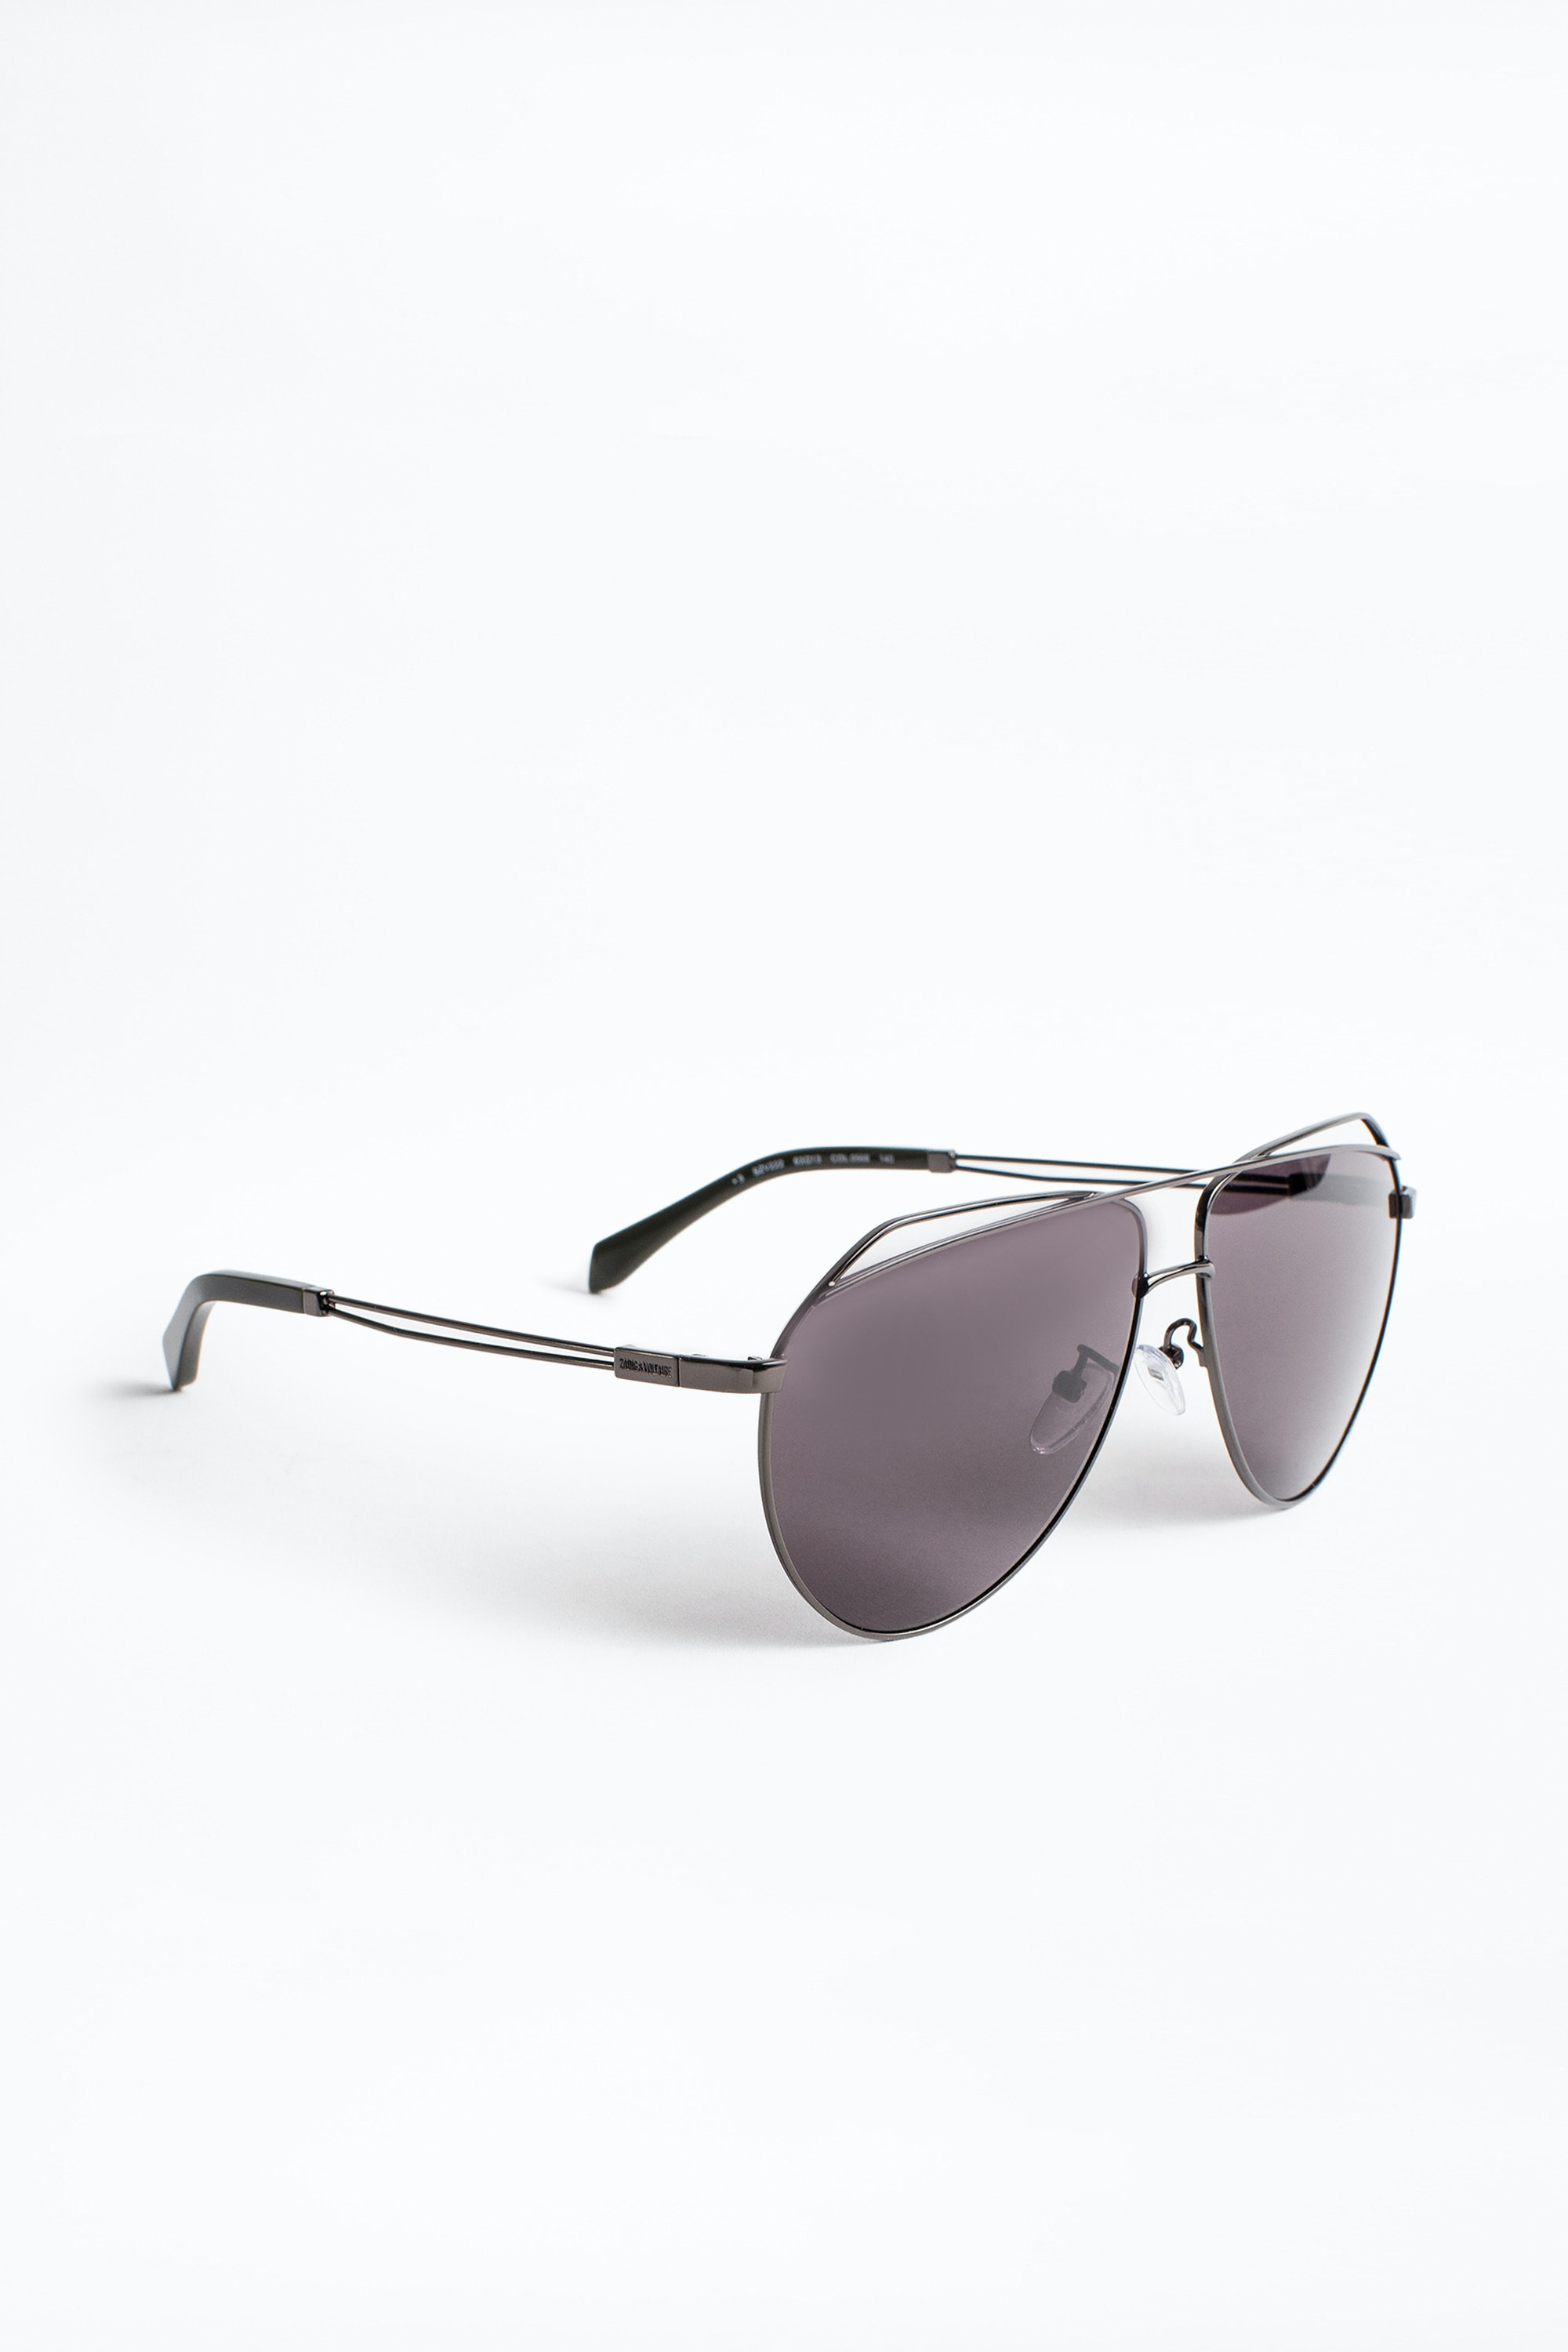 SZV222 Sunglasses